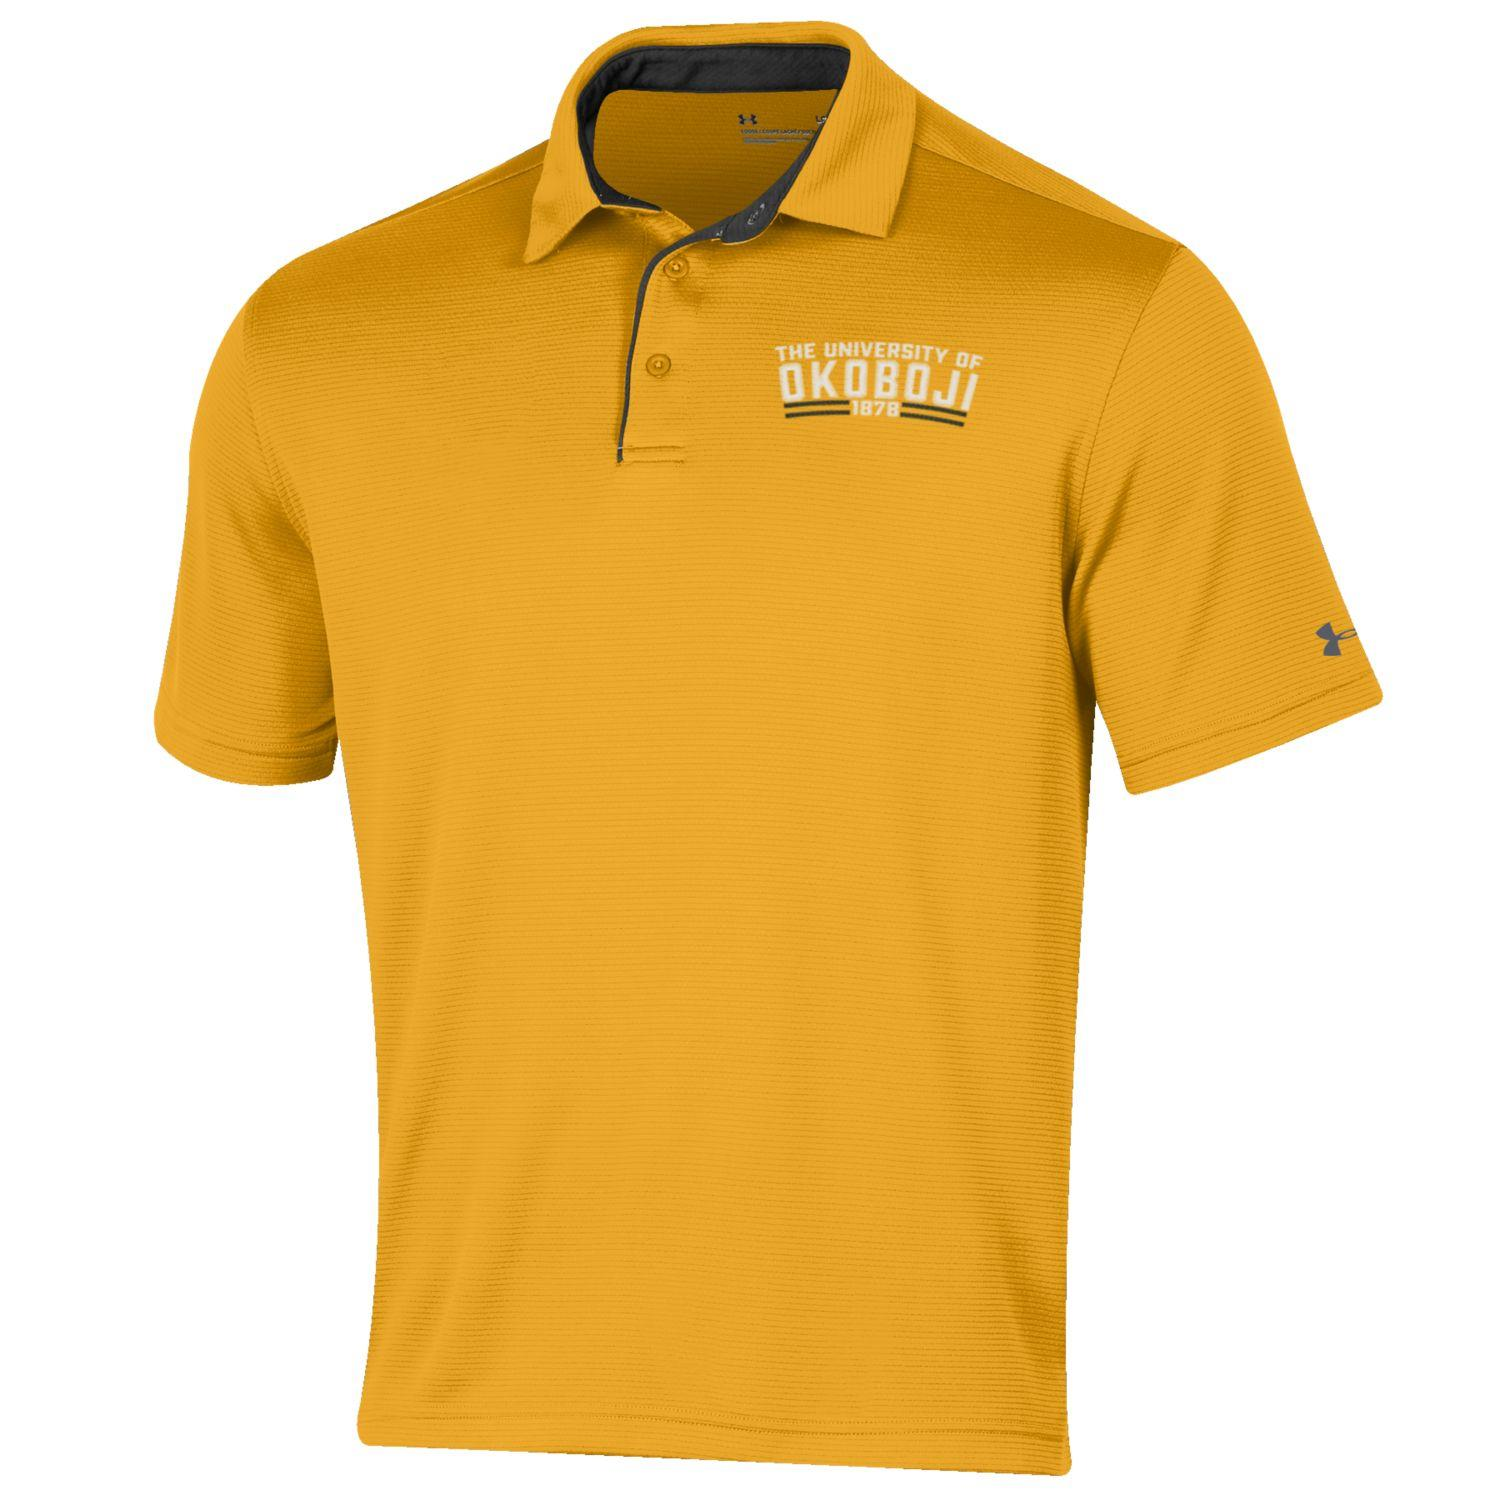 The UA U of O Tech Polo - Steeltown Gold